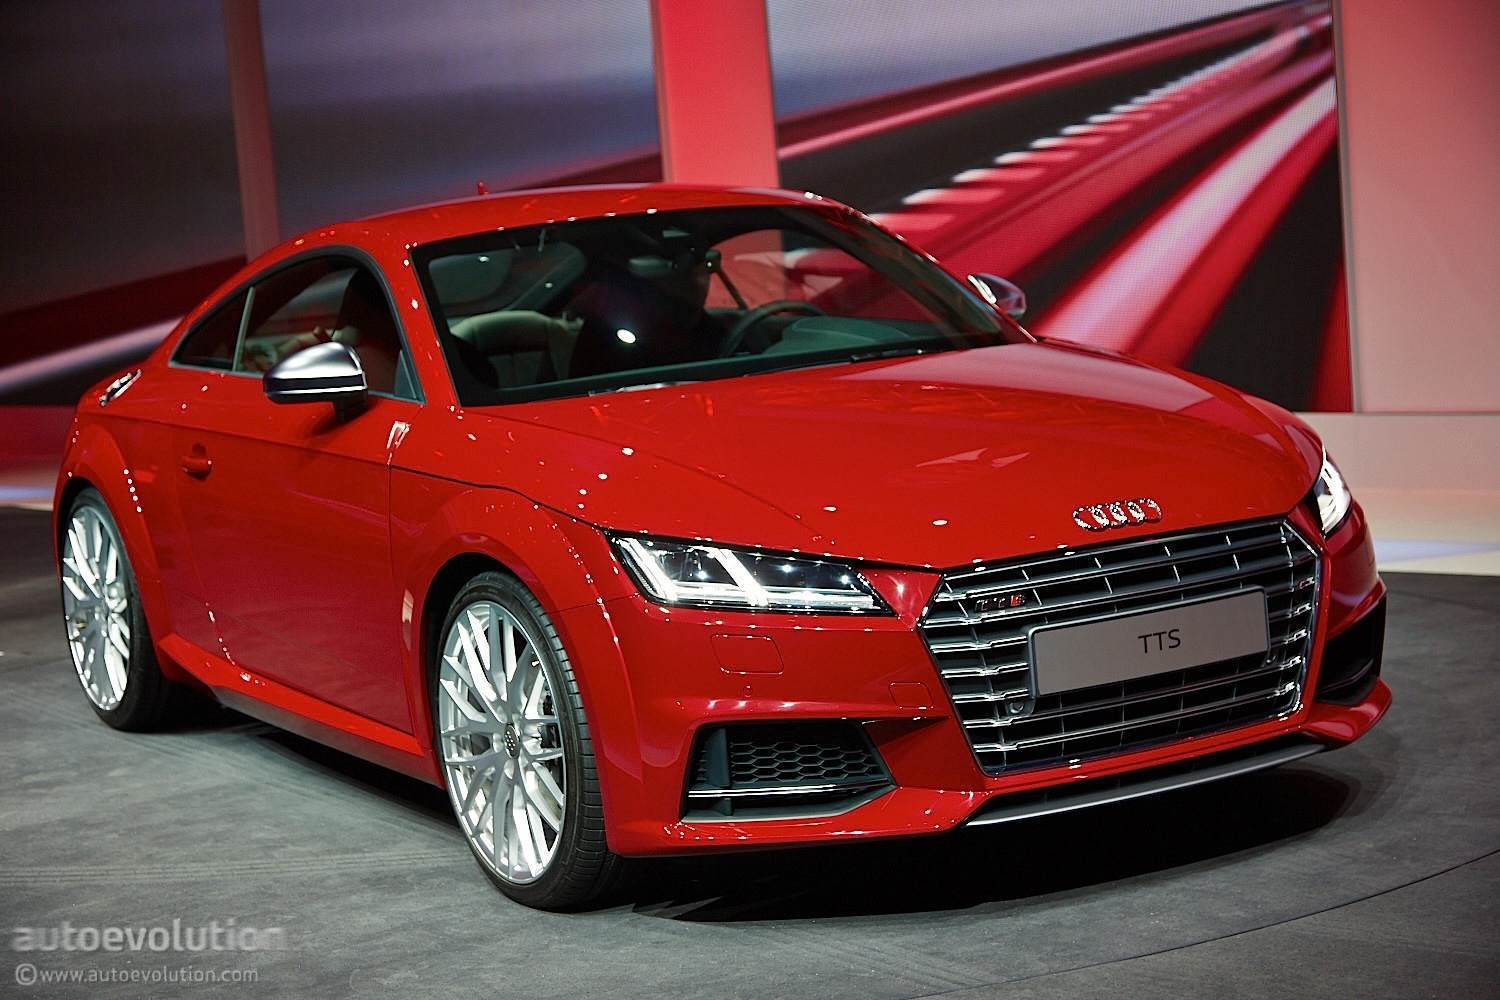 new audi tt and tts coupes get evolutionary styling and impressive engines live photos. Black Bedroom Furniture Sets. Home Design Ideas